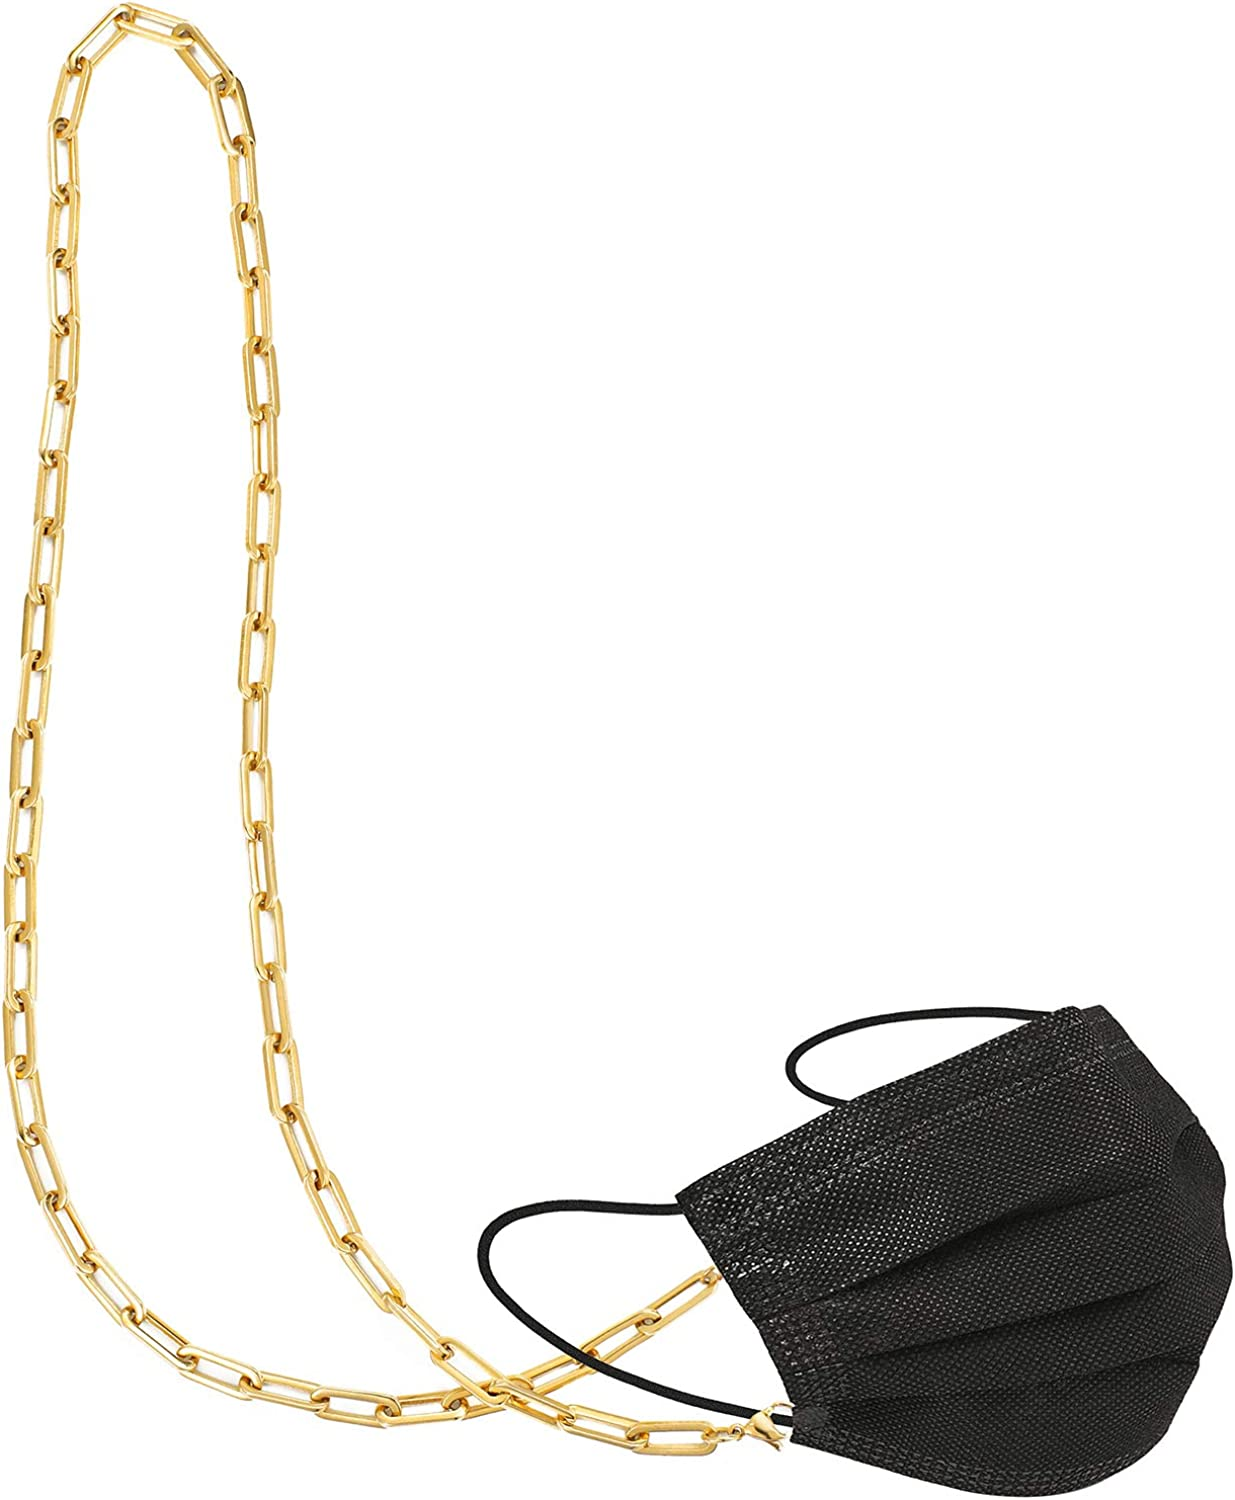 NEW SINYARS Face Mask Holder Lanyard Necklace Women Chain Max 57% OFF